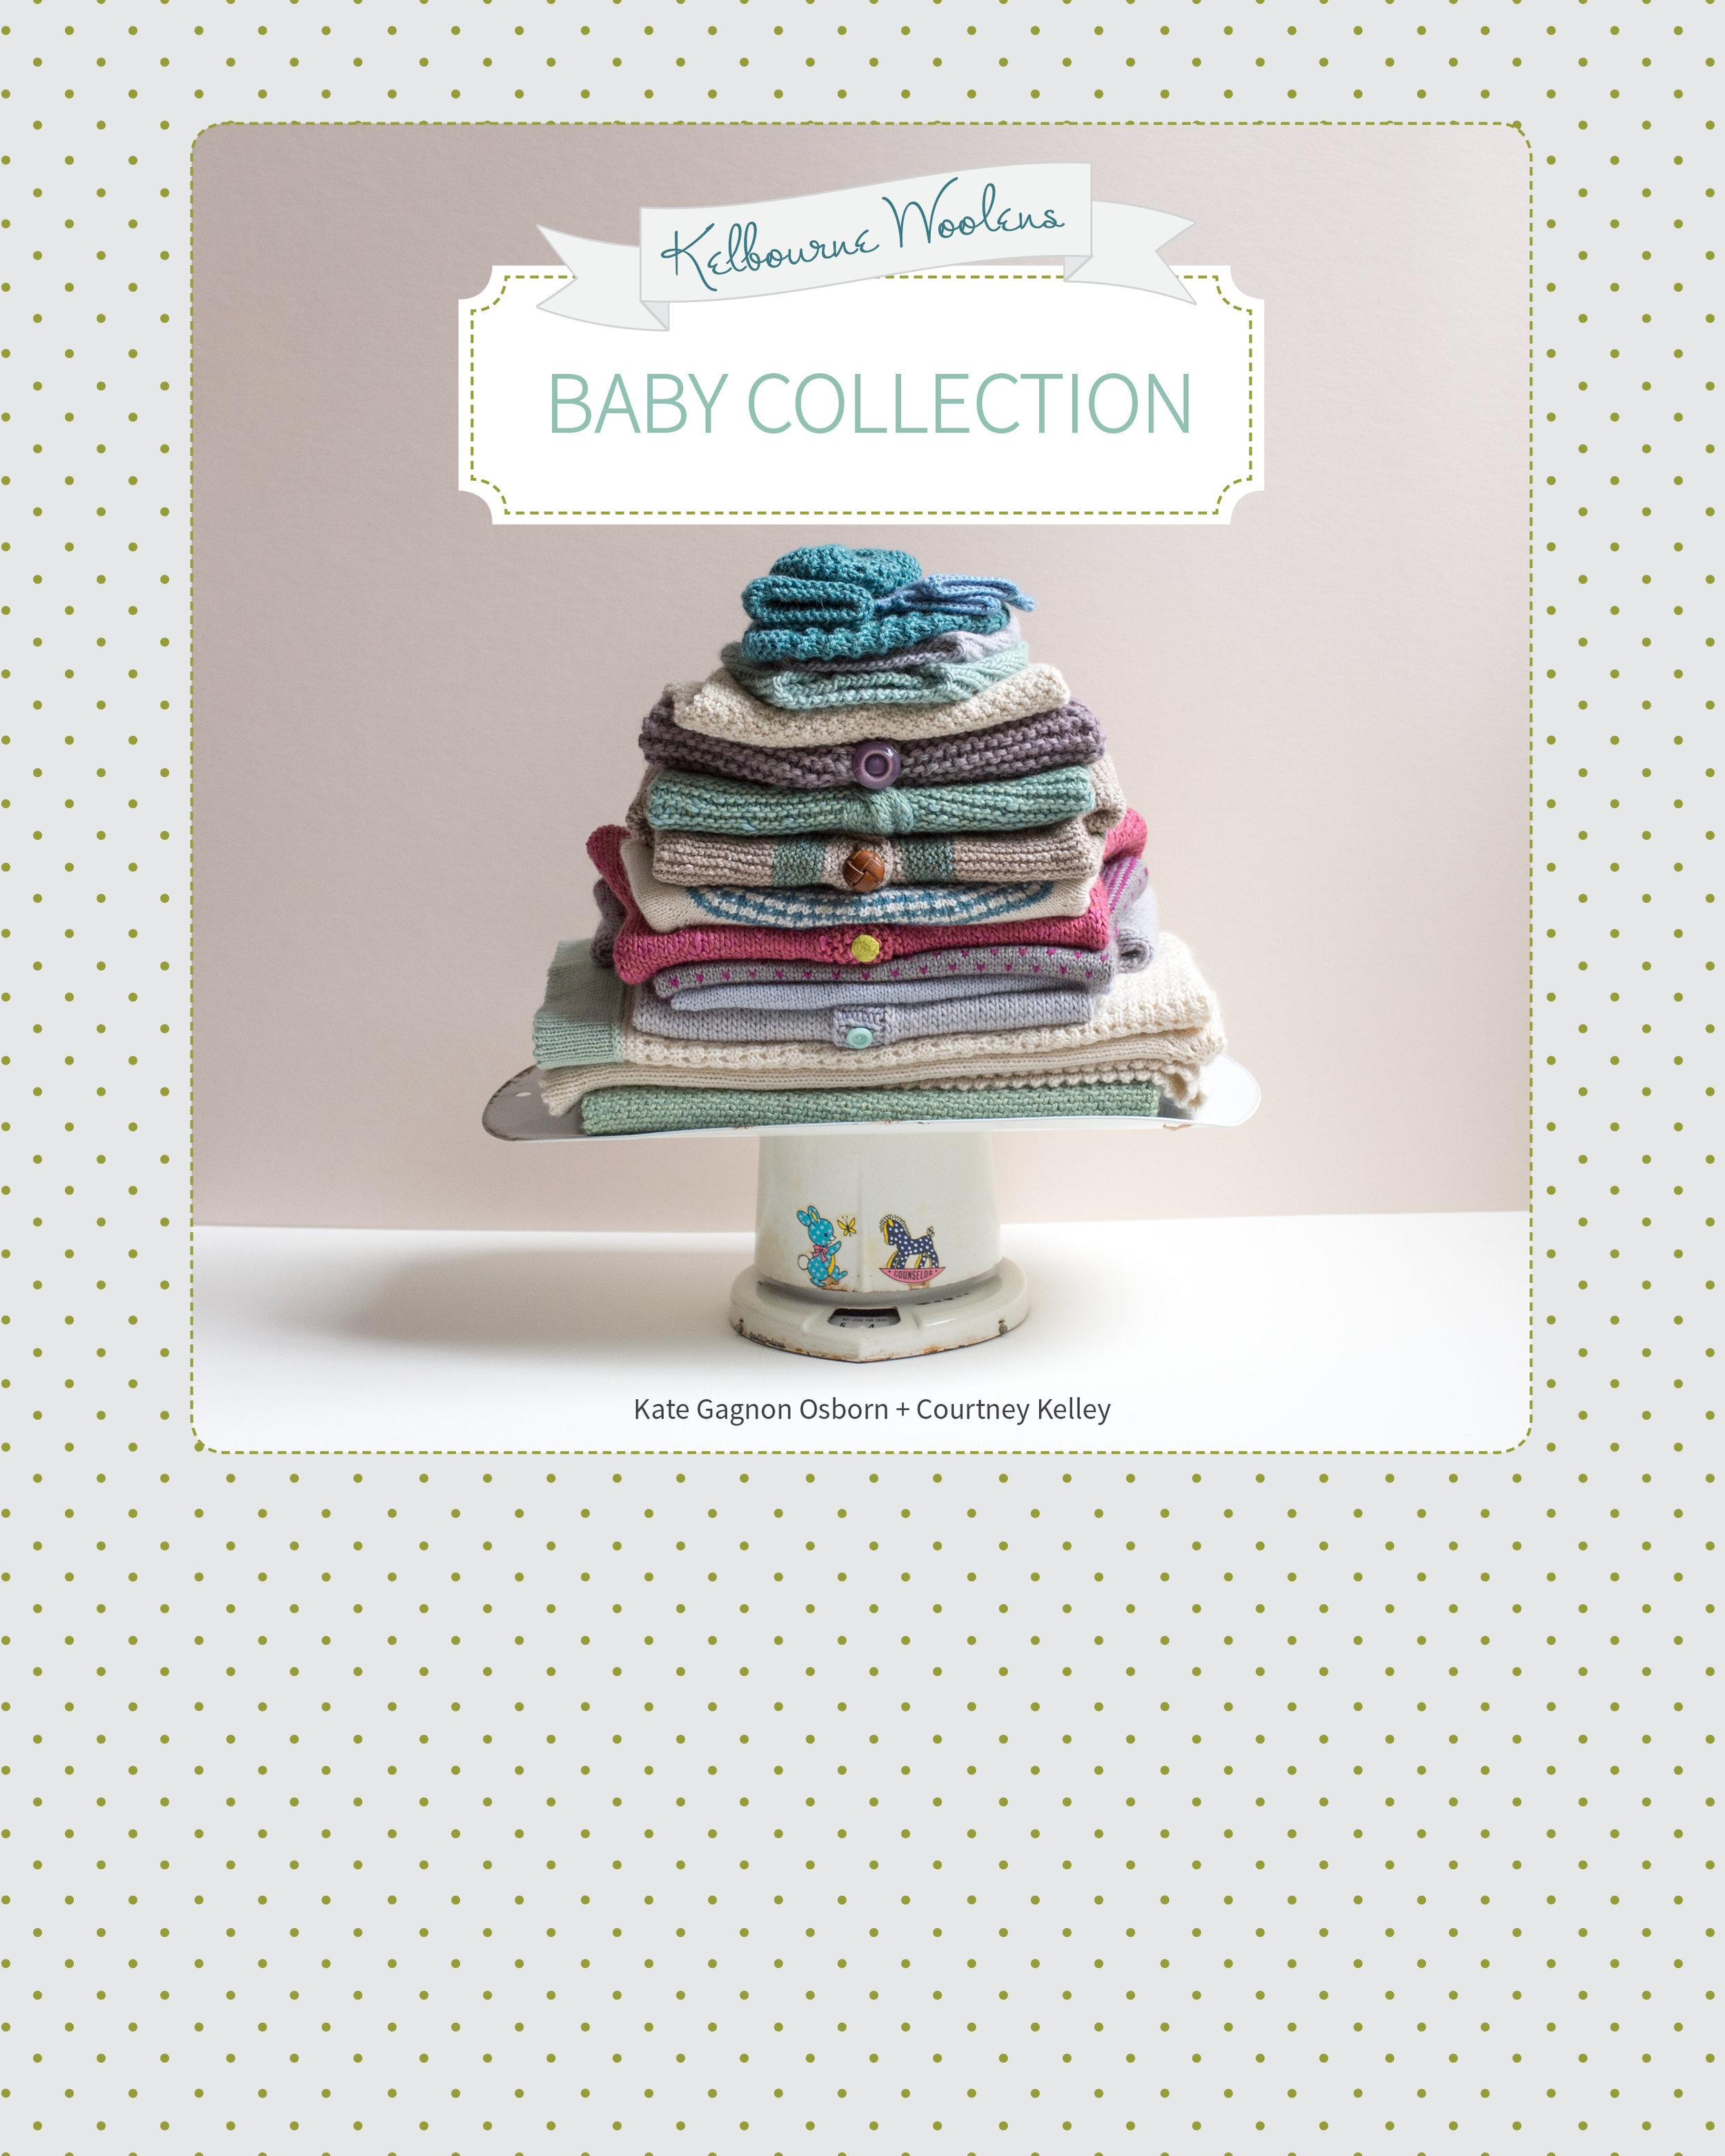 KW Baby Collection cover.jpg